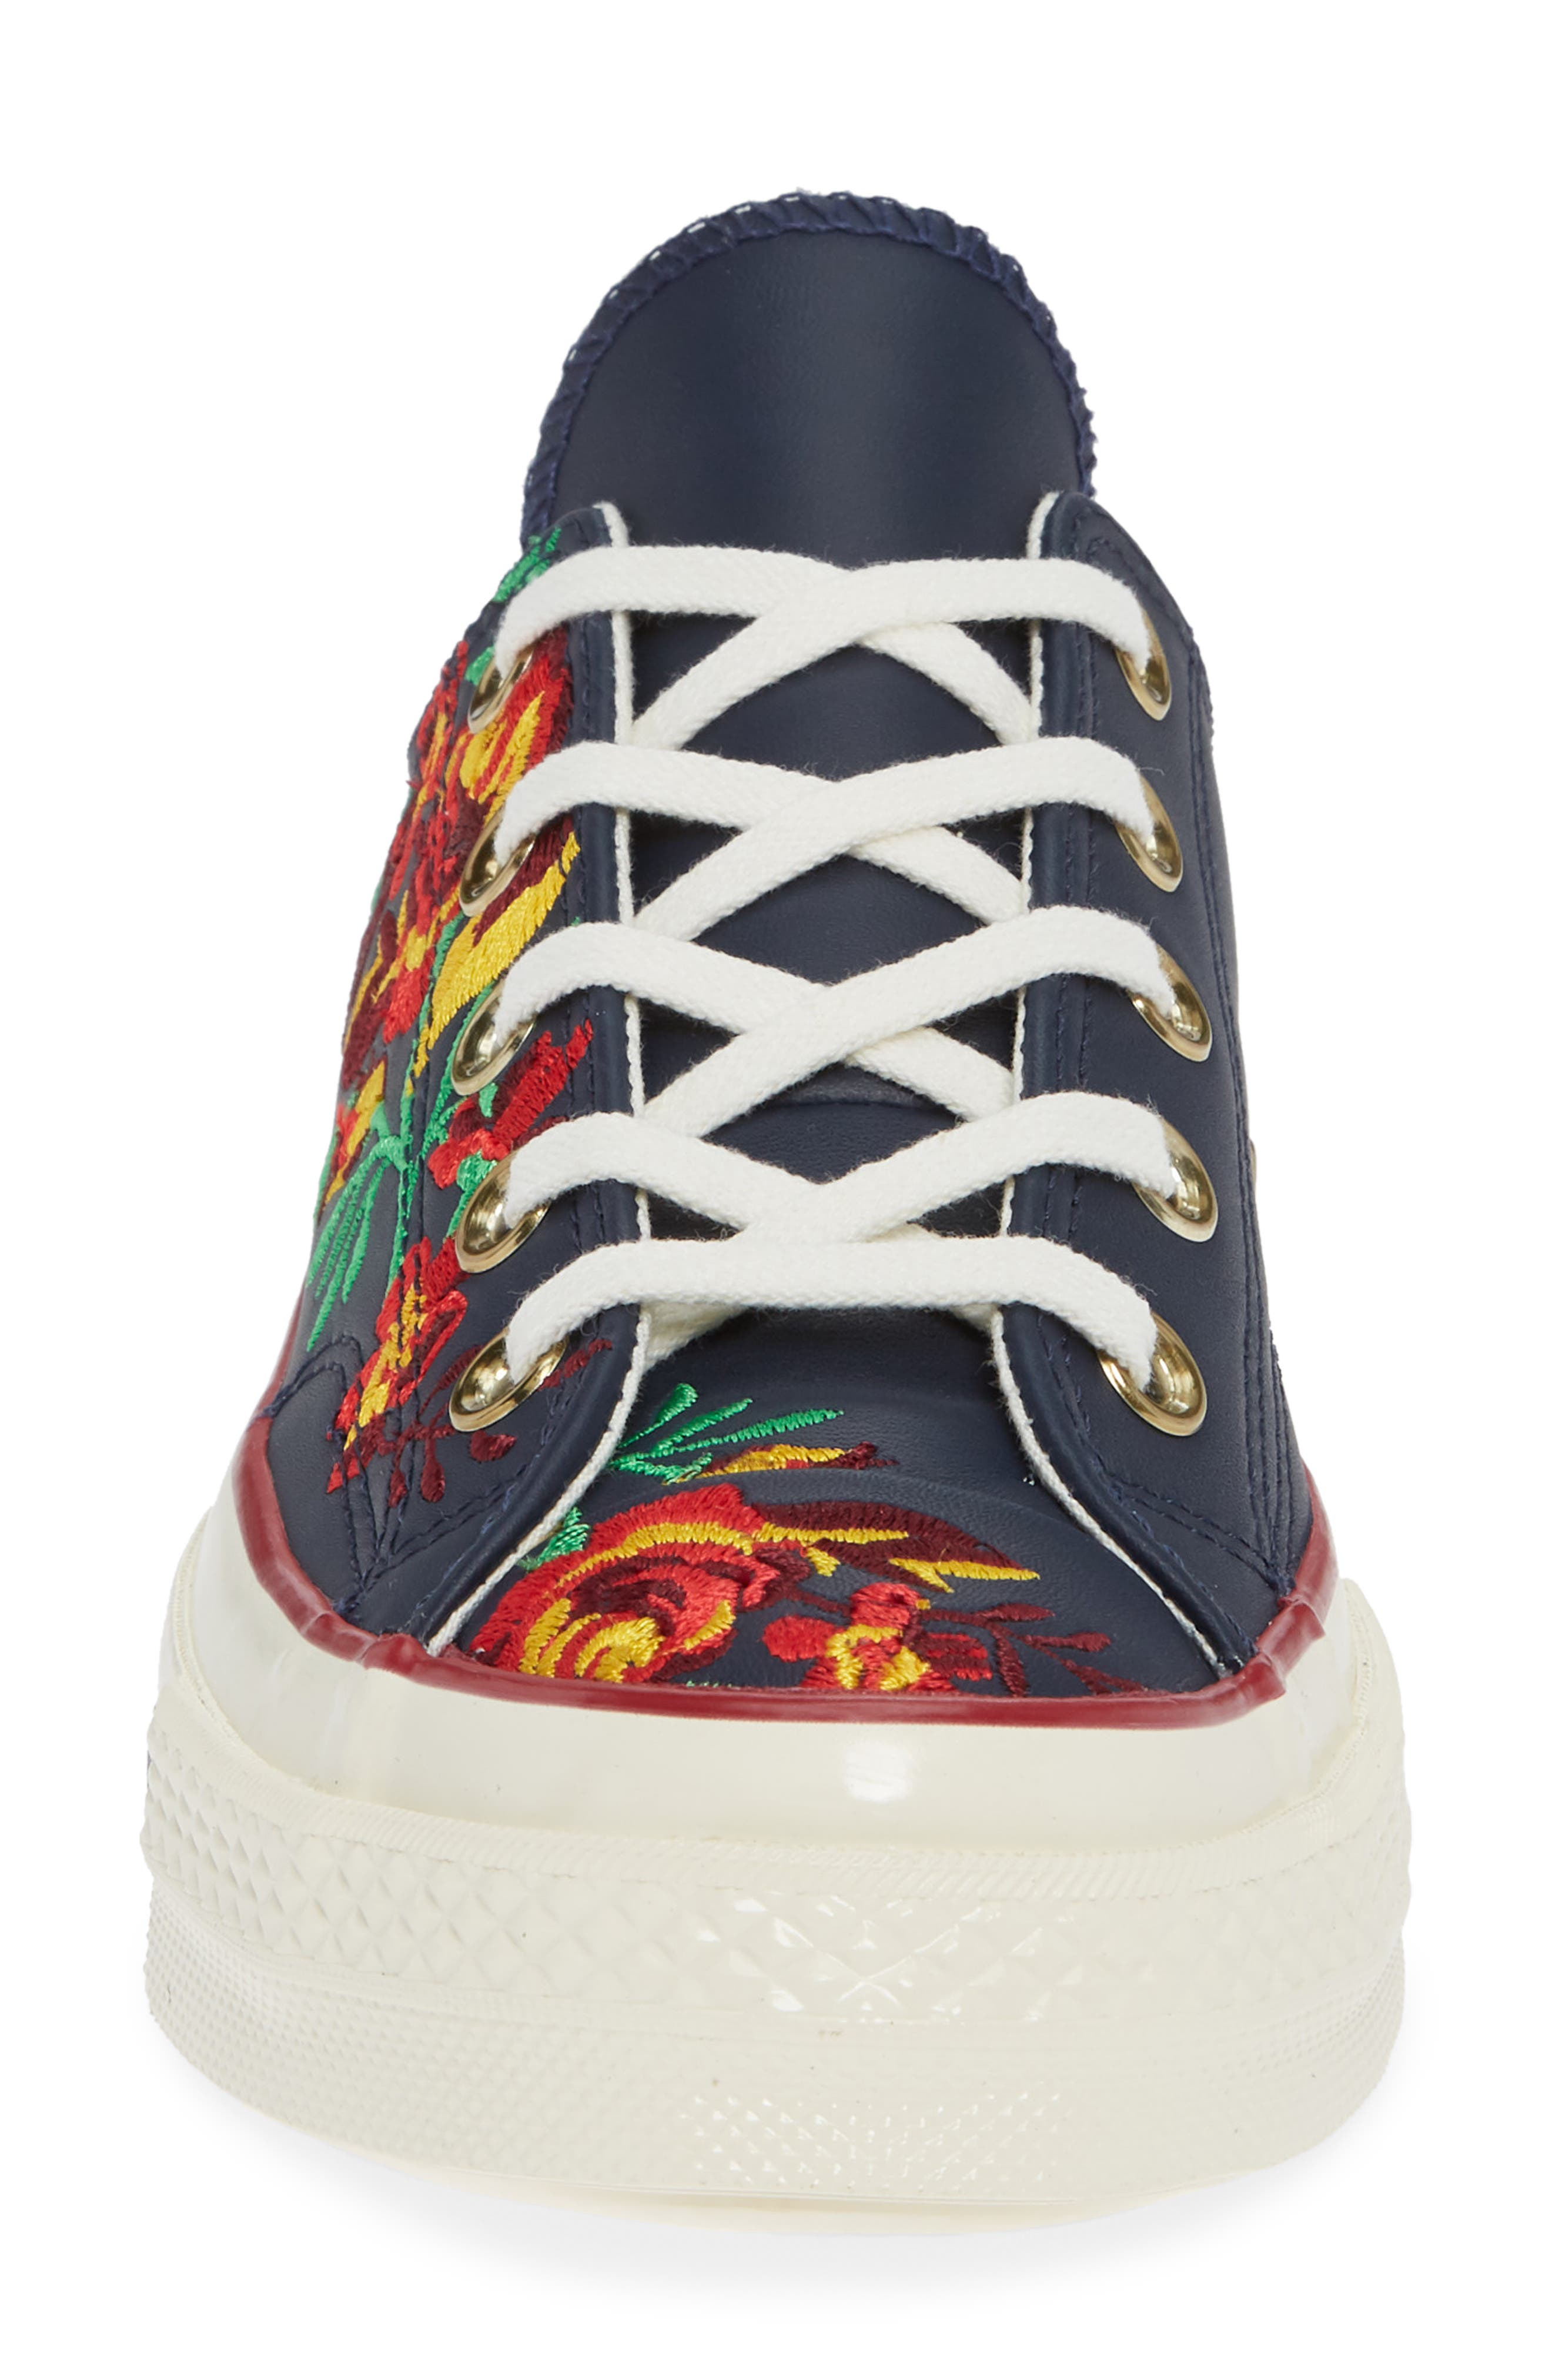 Chuck Taylor<sup>®</sup> All Star<sup>®</sup> Parkway Floral 70 Low Top Sneaker,                             Alternate thumbnail 4, color,                             OBSIDIAN/ CHERRY LEATHER